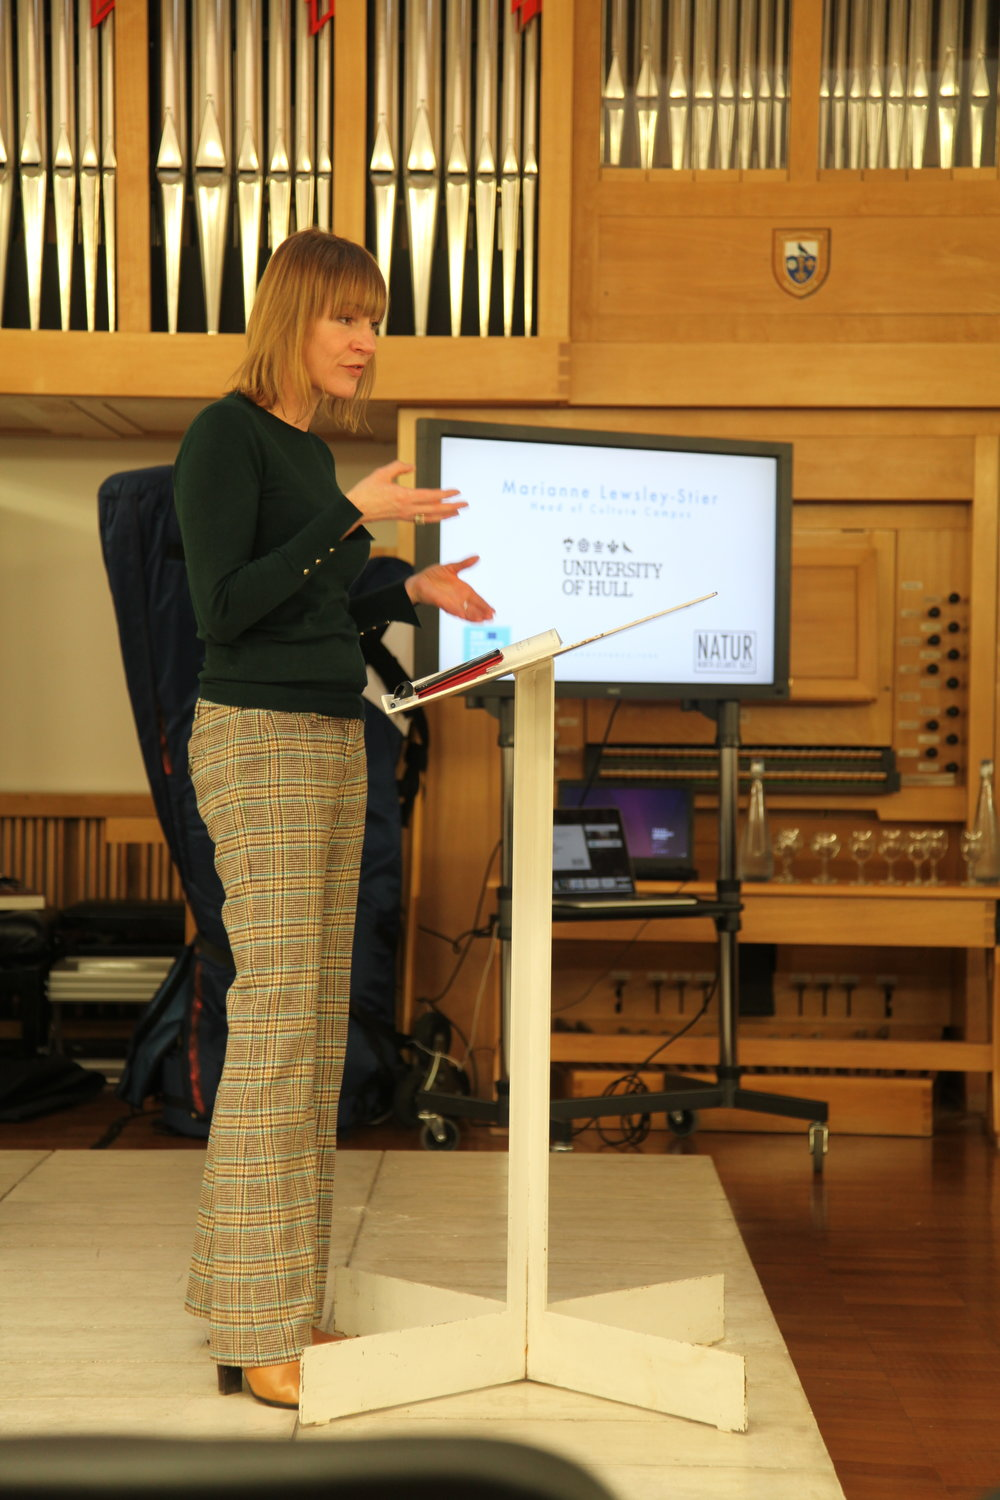 Marianne Lewsley-Stier (Head of Culture Campus, University of Hull)